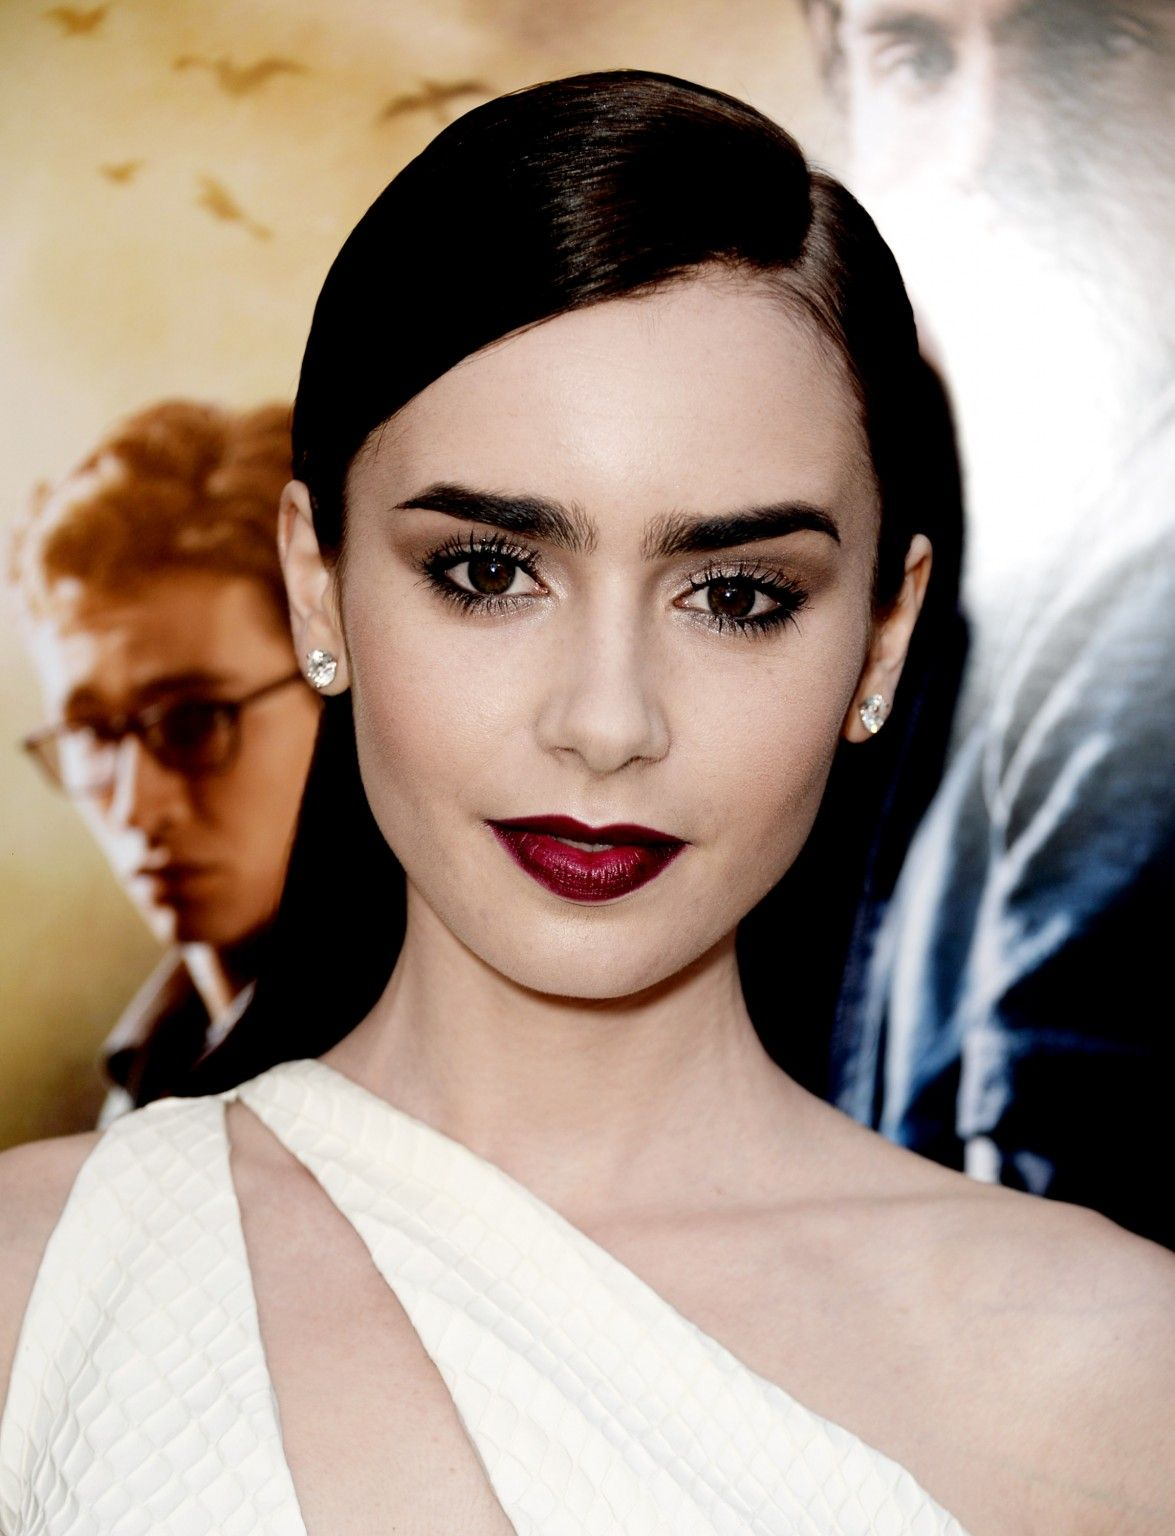 Lily Collins Beauty | Lily Collins Red Carpet 2013 PHOTOS ...